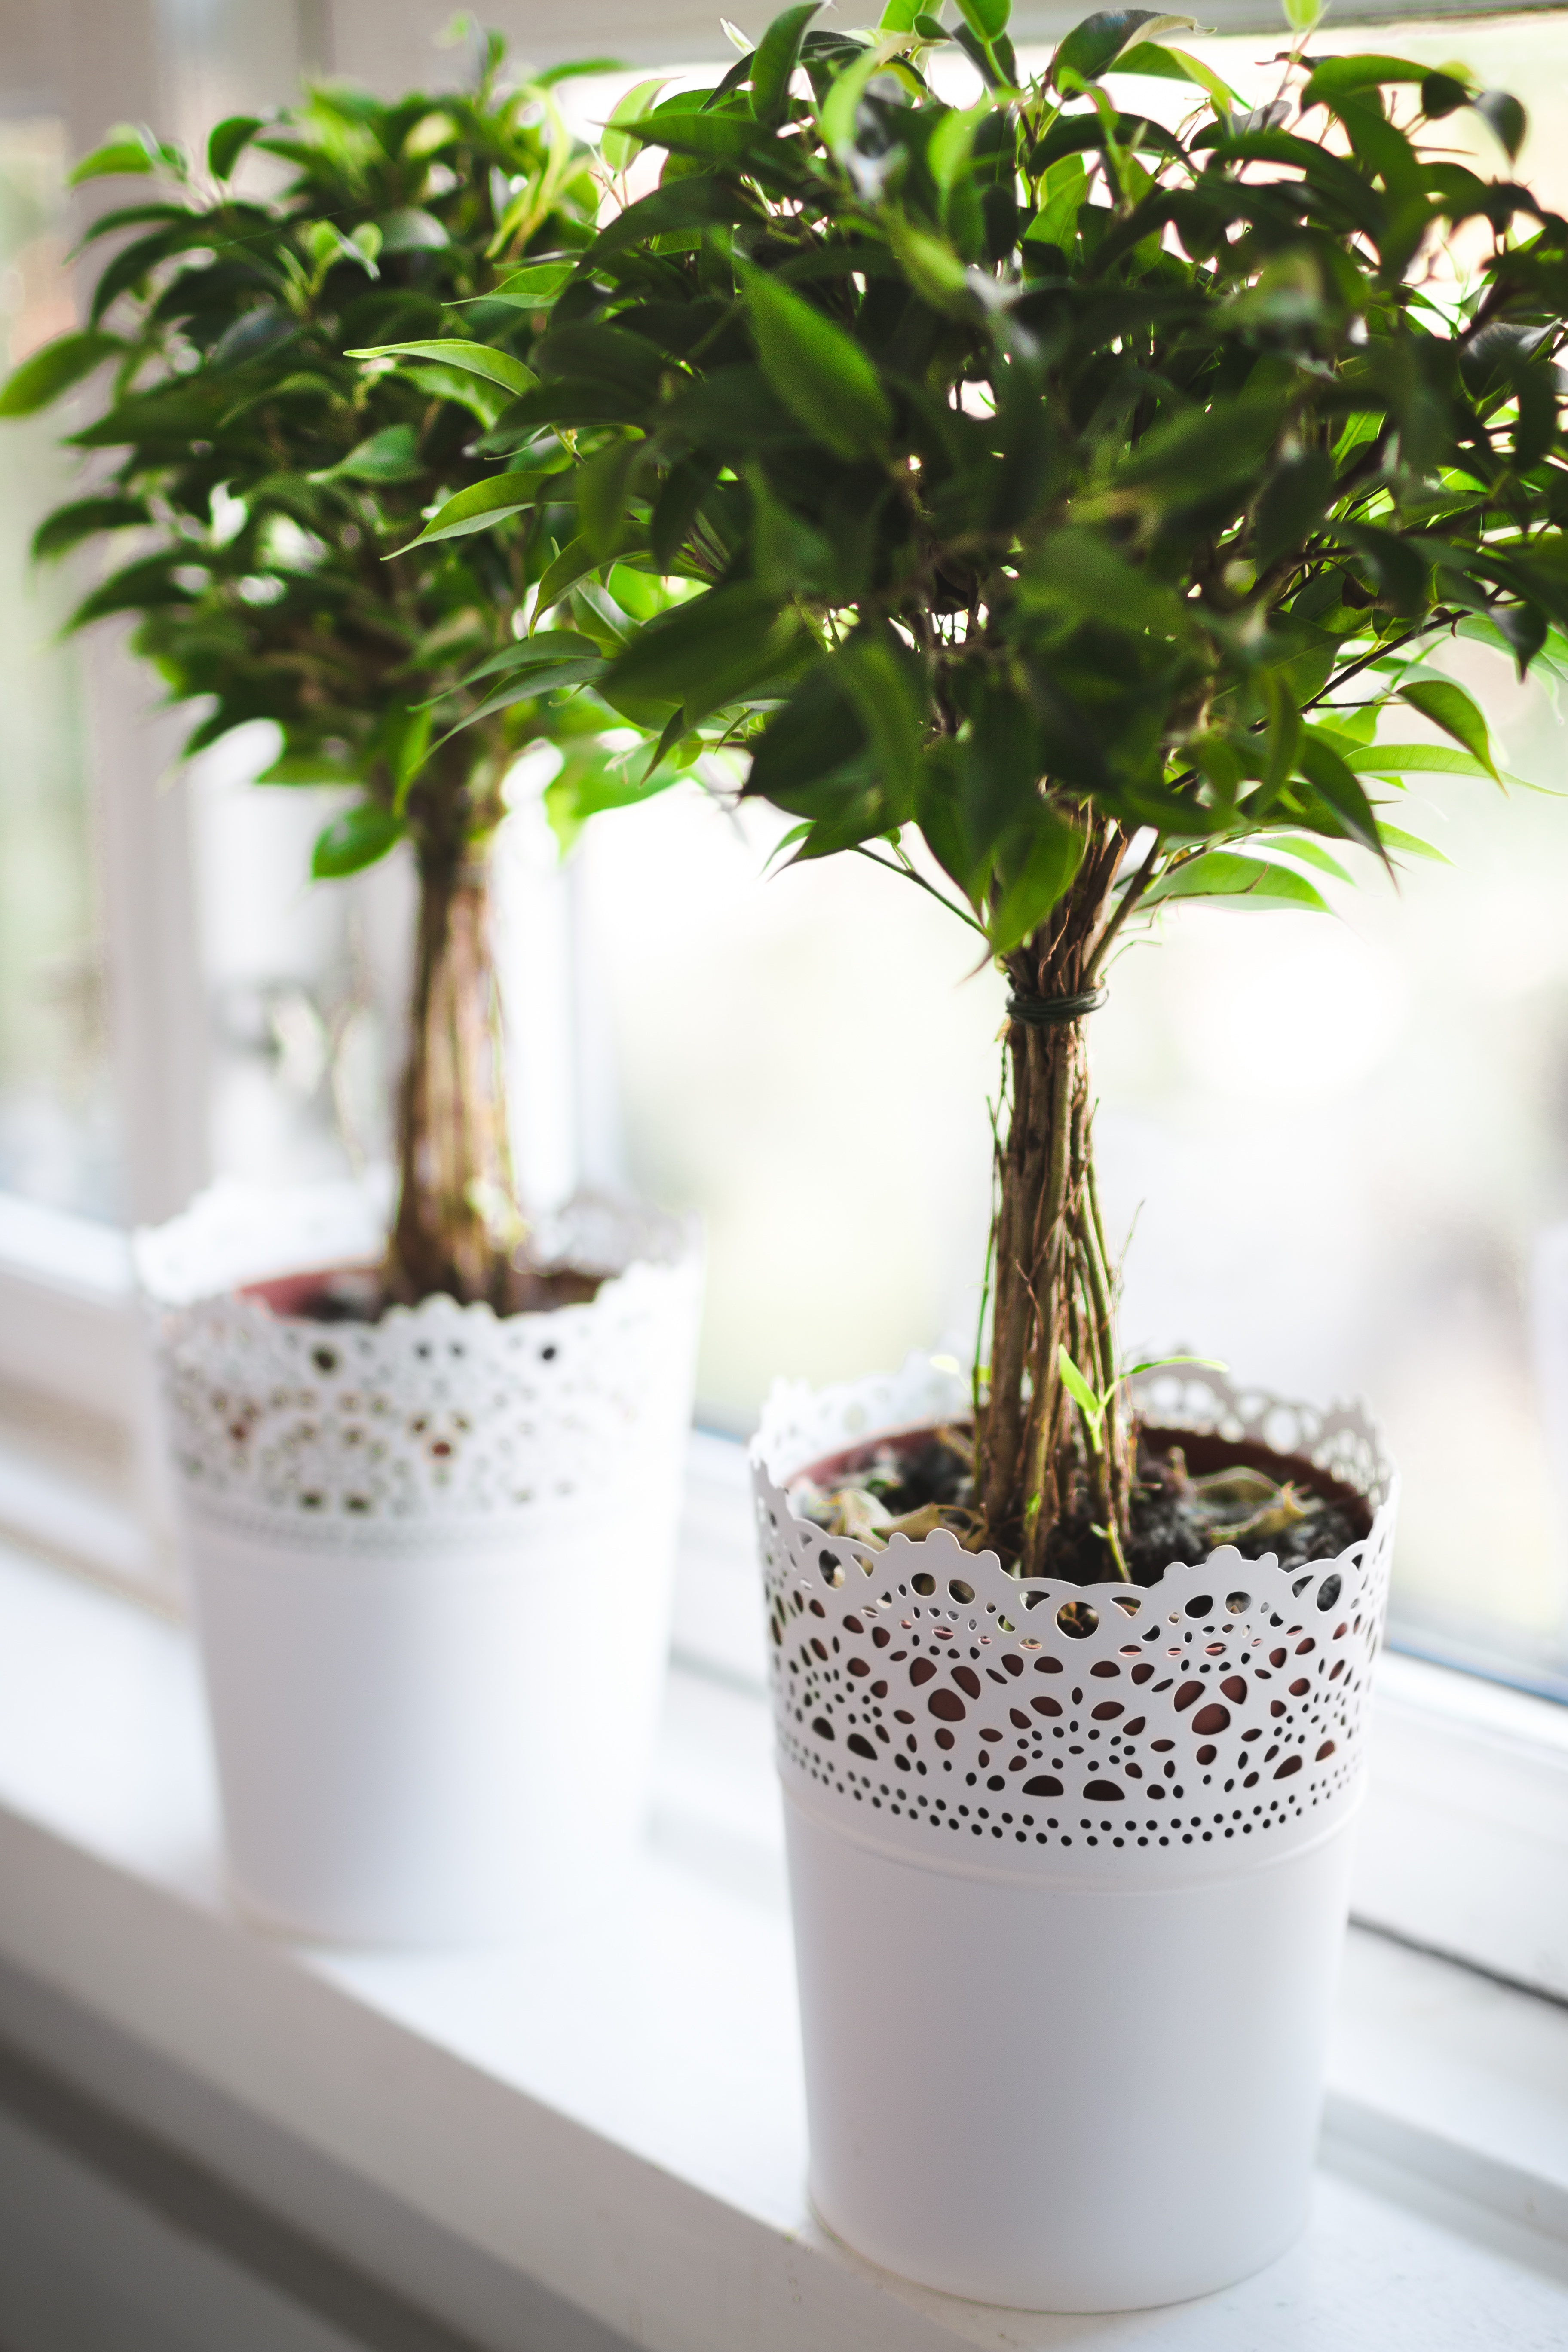 Thrifty ideas for cosy decoration includes indoor plants